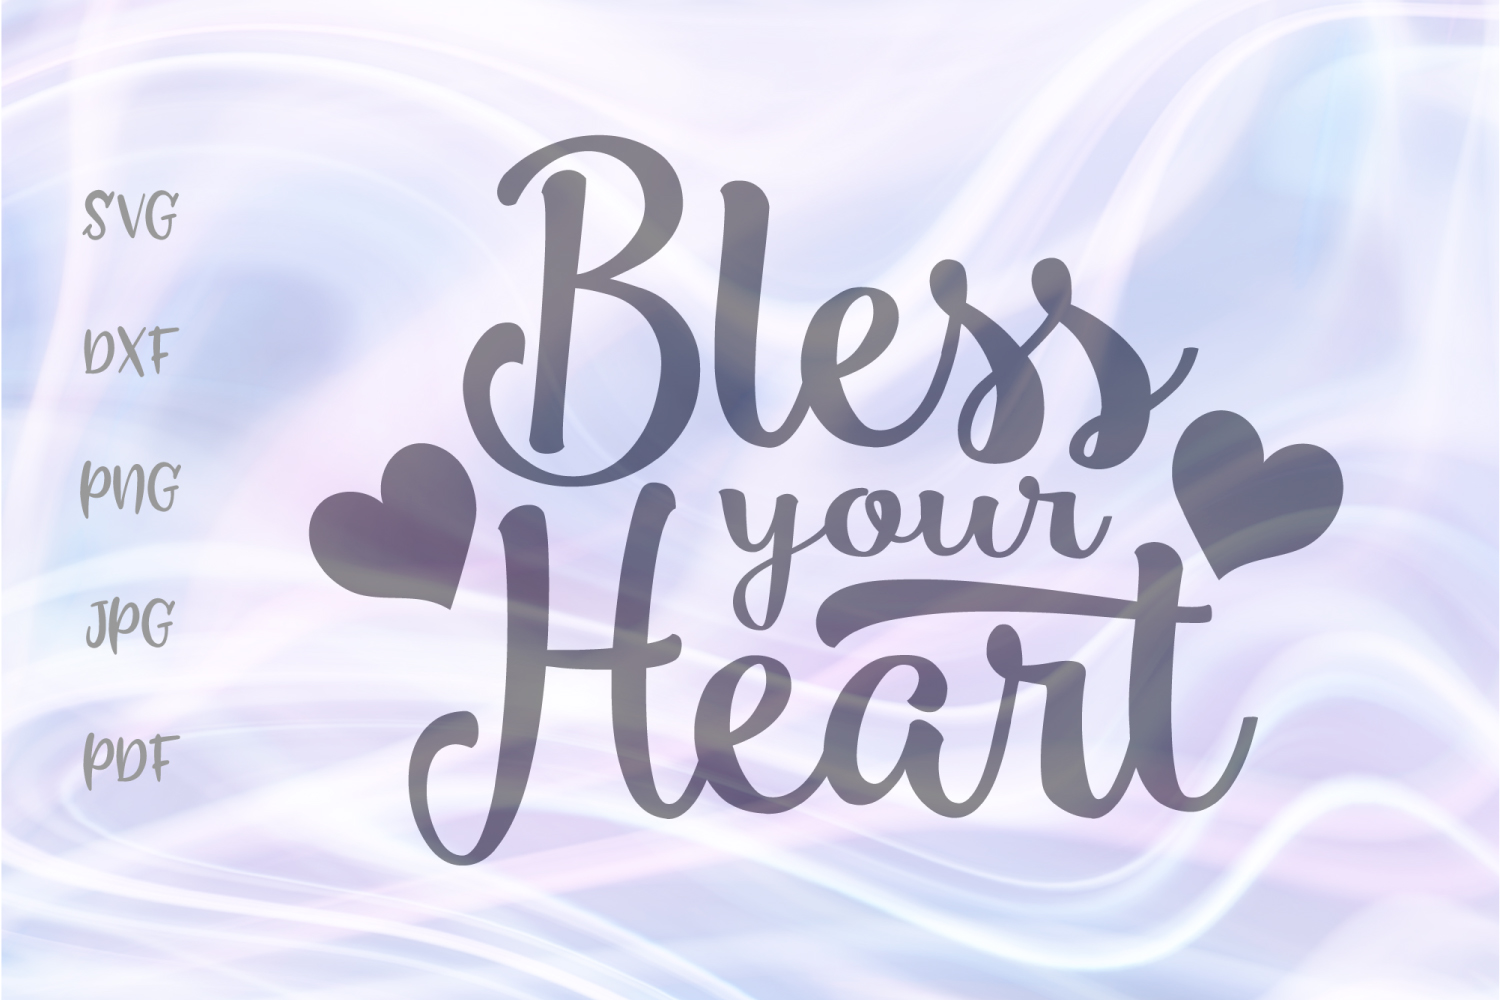 Download Free Bless Your Heart For Cricut Vector Graphic By Digitals By Hanna for Cricut Explore, Silhouette and other cutting machines.